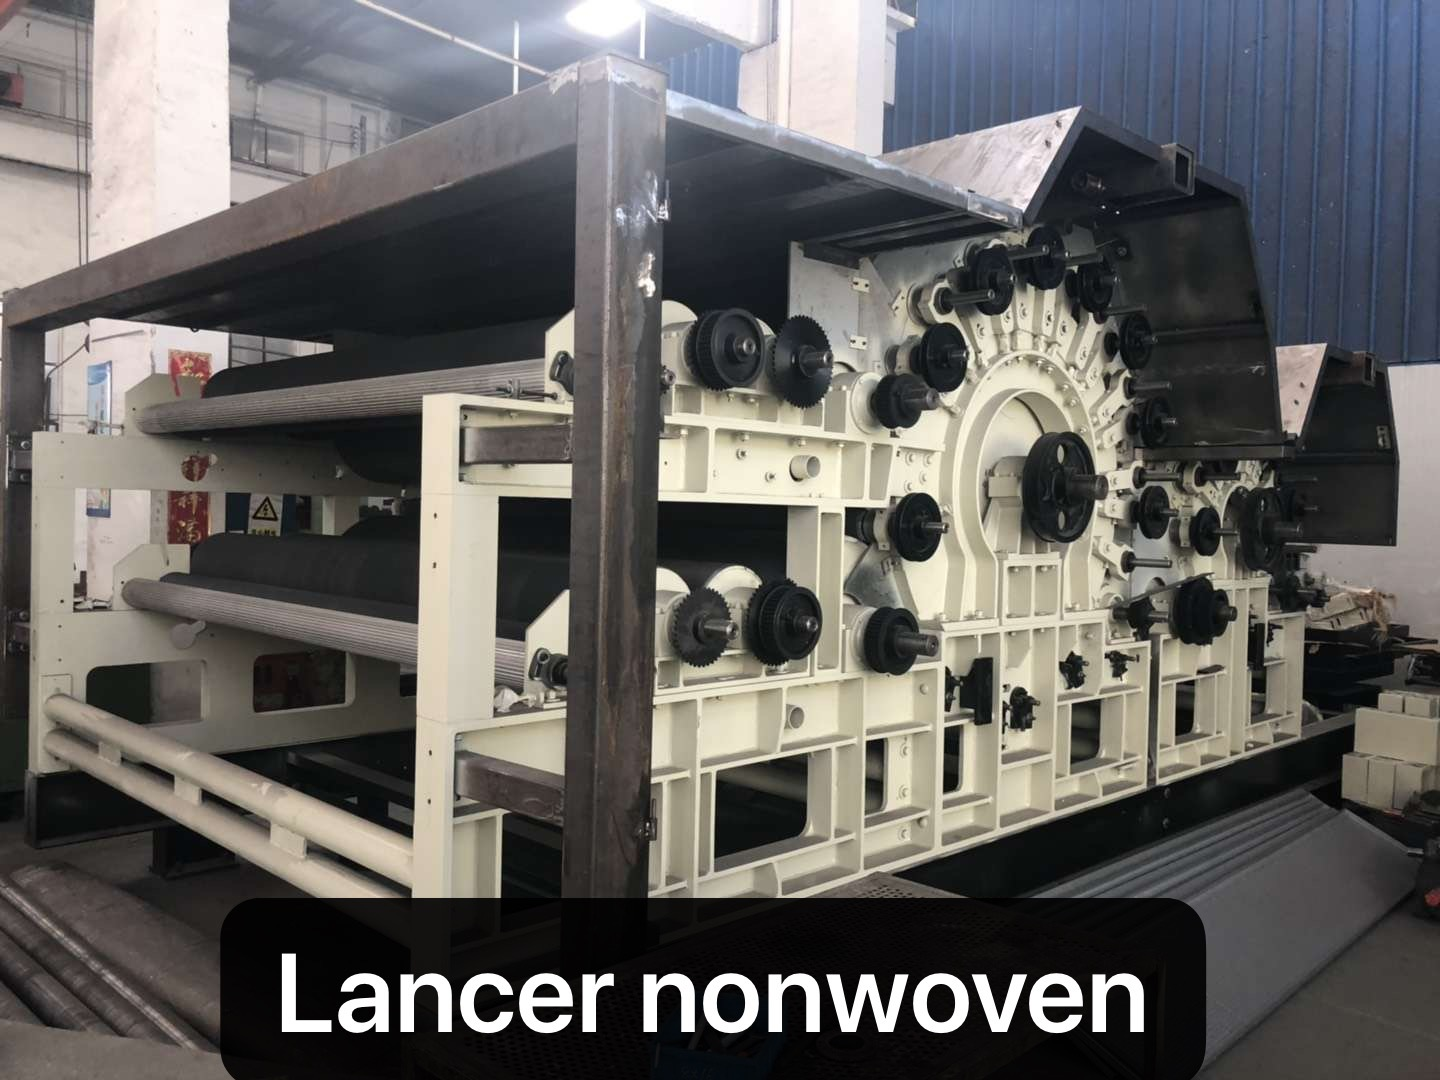 Nonwoven interlining production machine